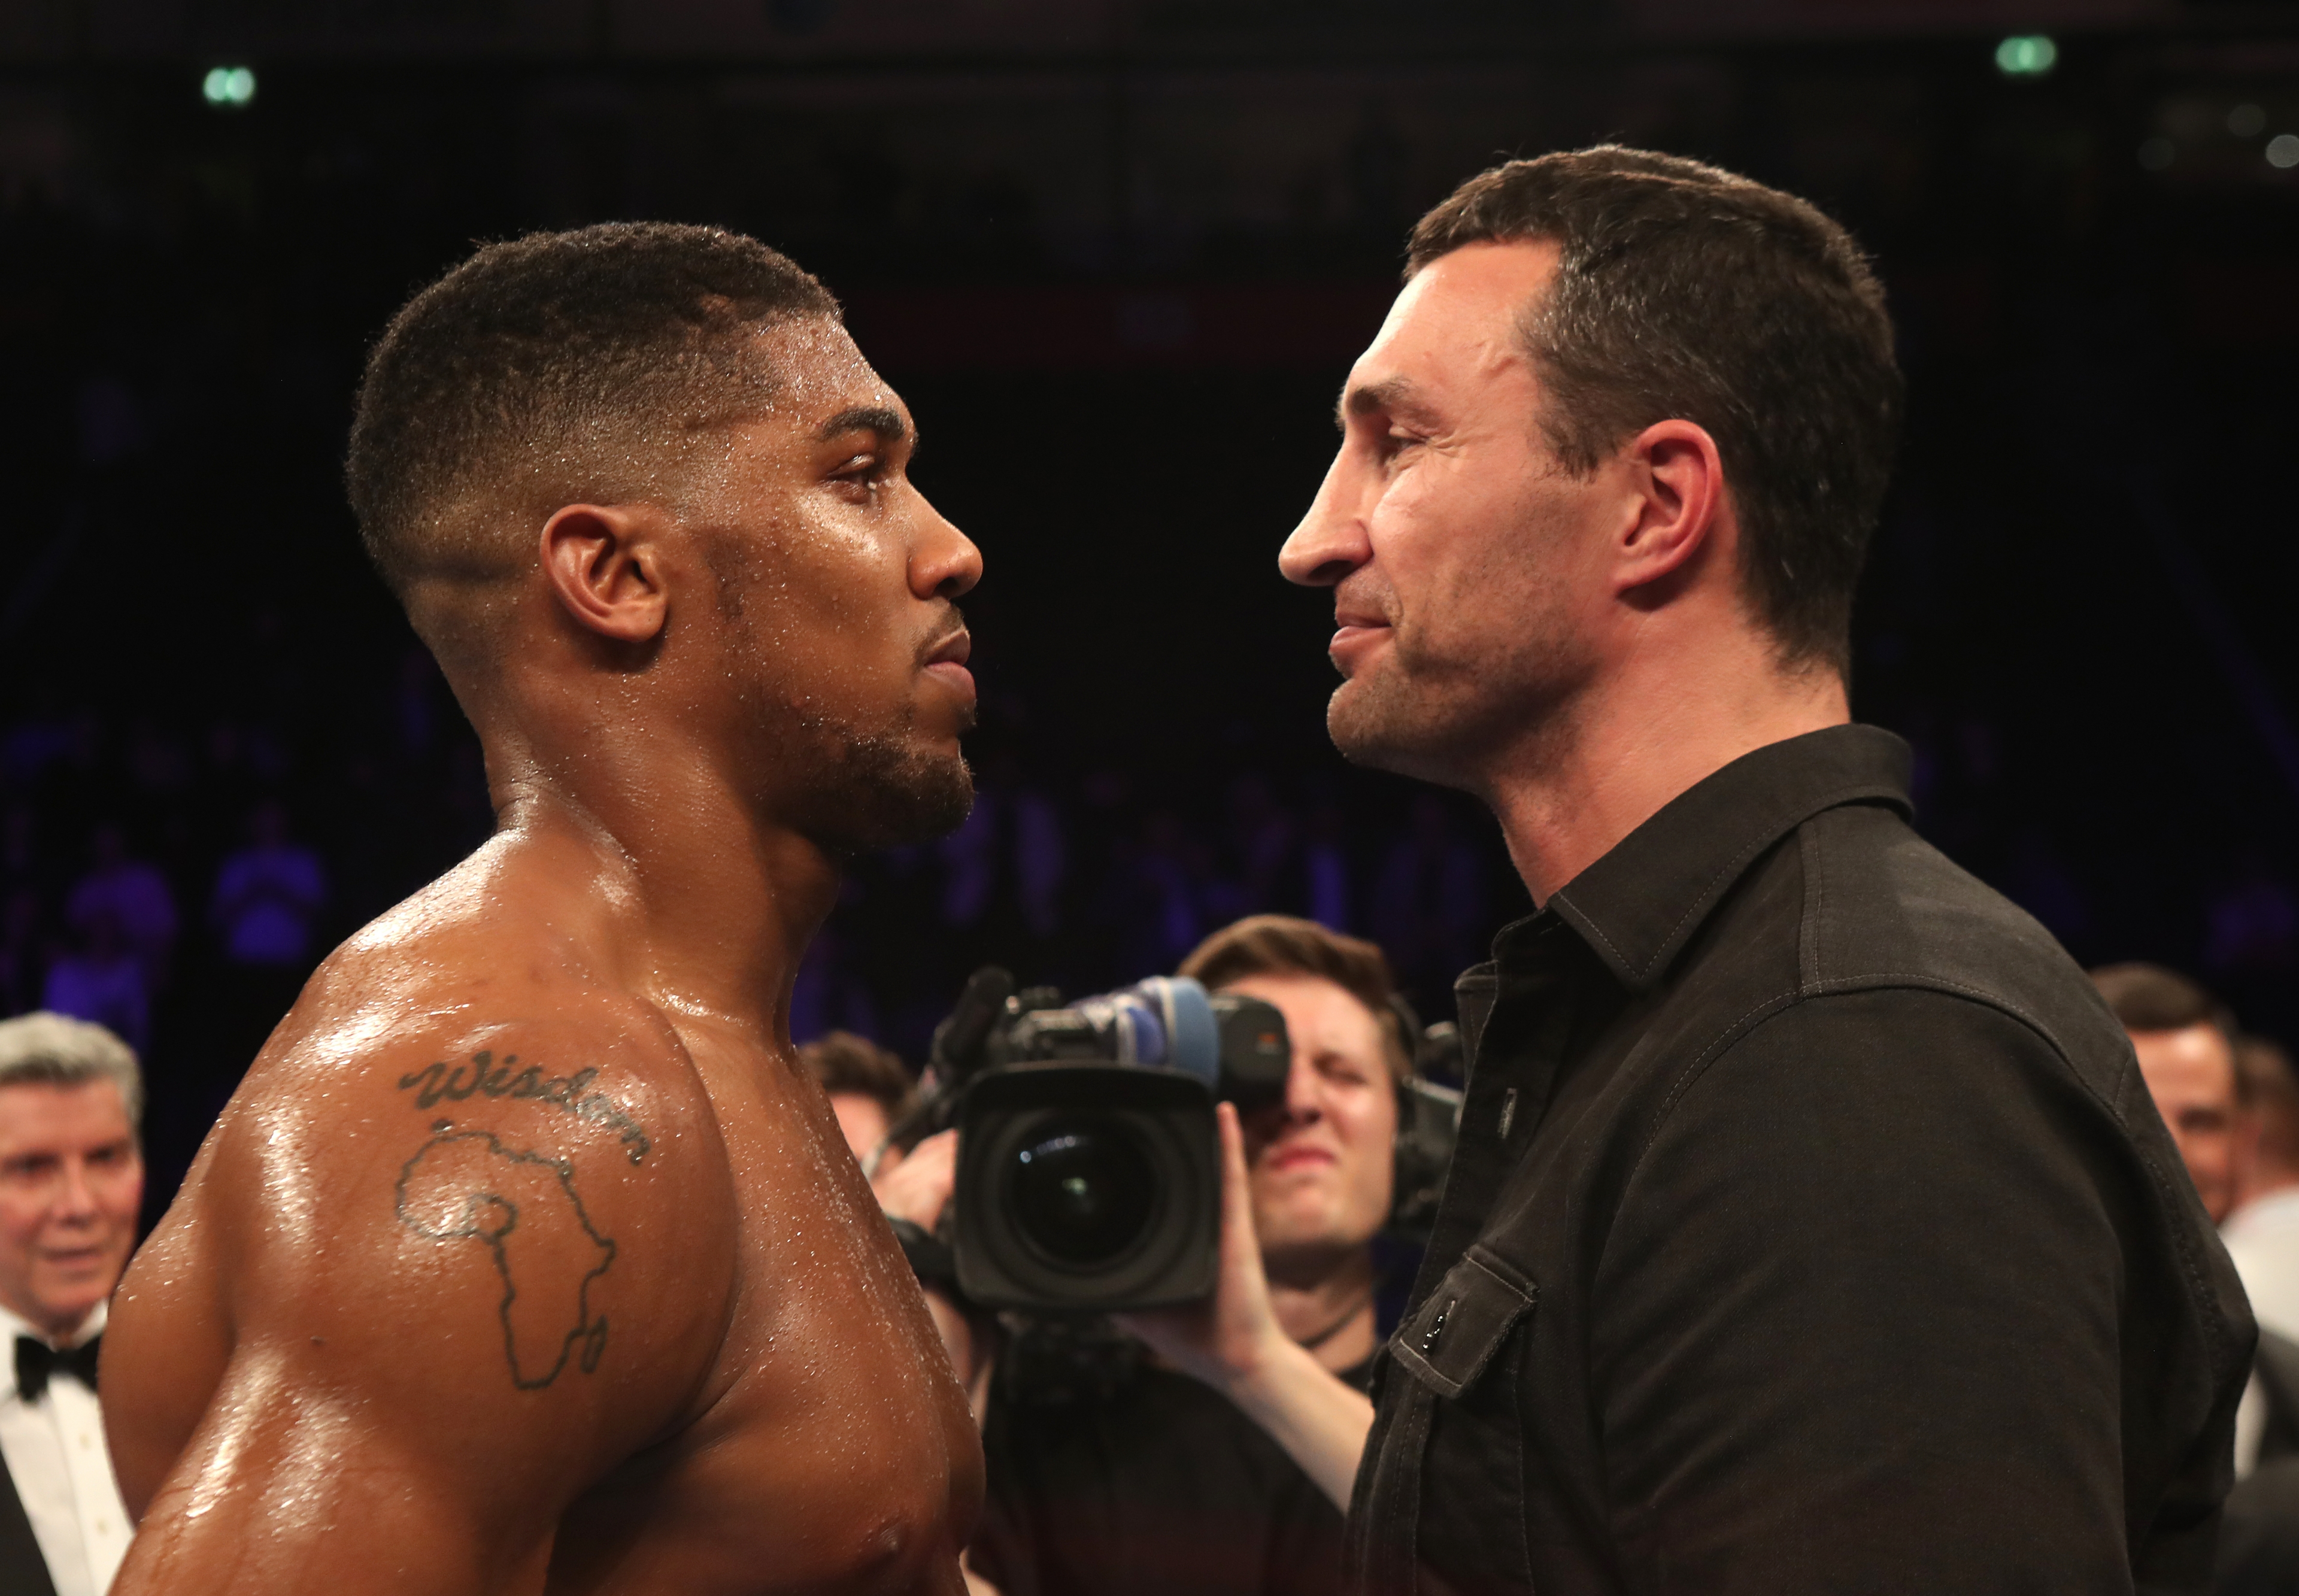 Anthony Joshua, left, and Wladimir Klitschko stand face to face